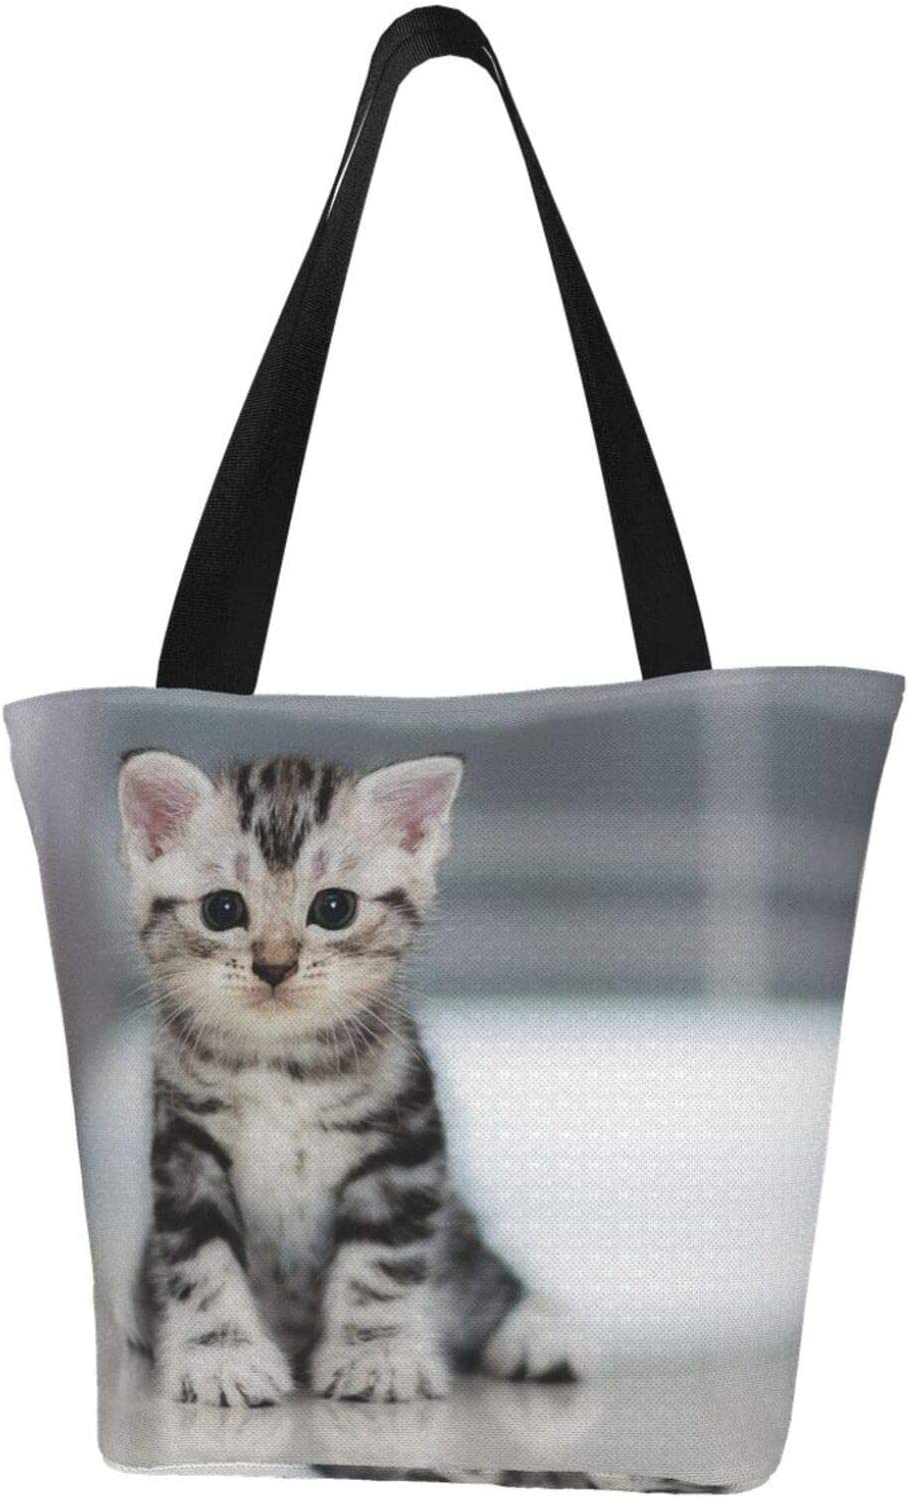 AKLID Cute Gray Cat Extra Large Water Max 78% OFF Tote Canvas New popularity Bag Resistant